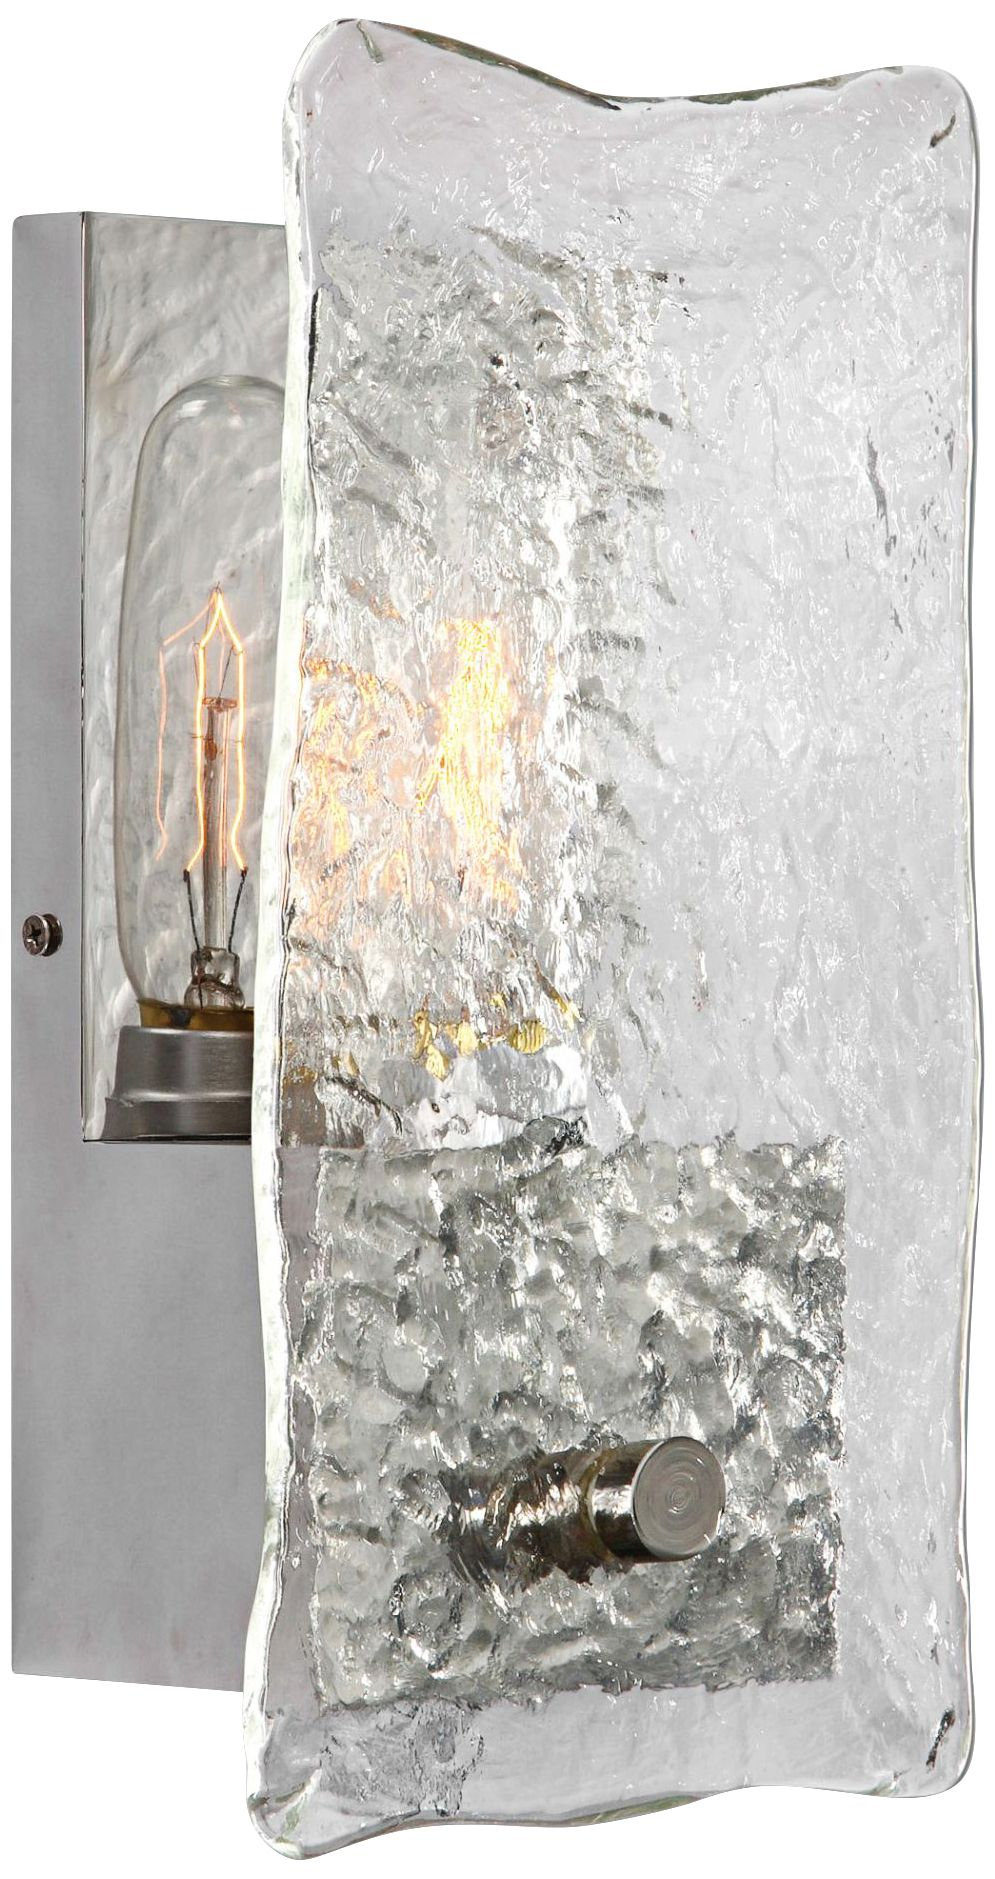 Uttermost Cheminee 11 3/4 H Thick Slump Glass Wall Sconce  sc 1 st  L&s Plus & Uttermost Cheminee 11 3/4